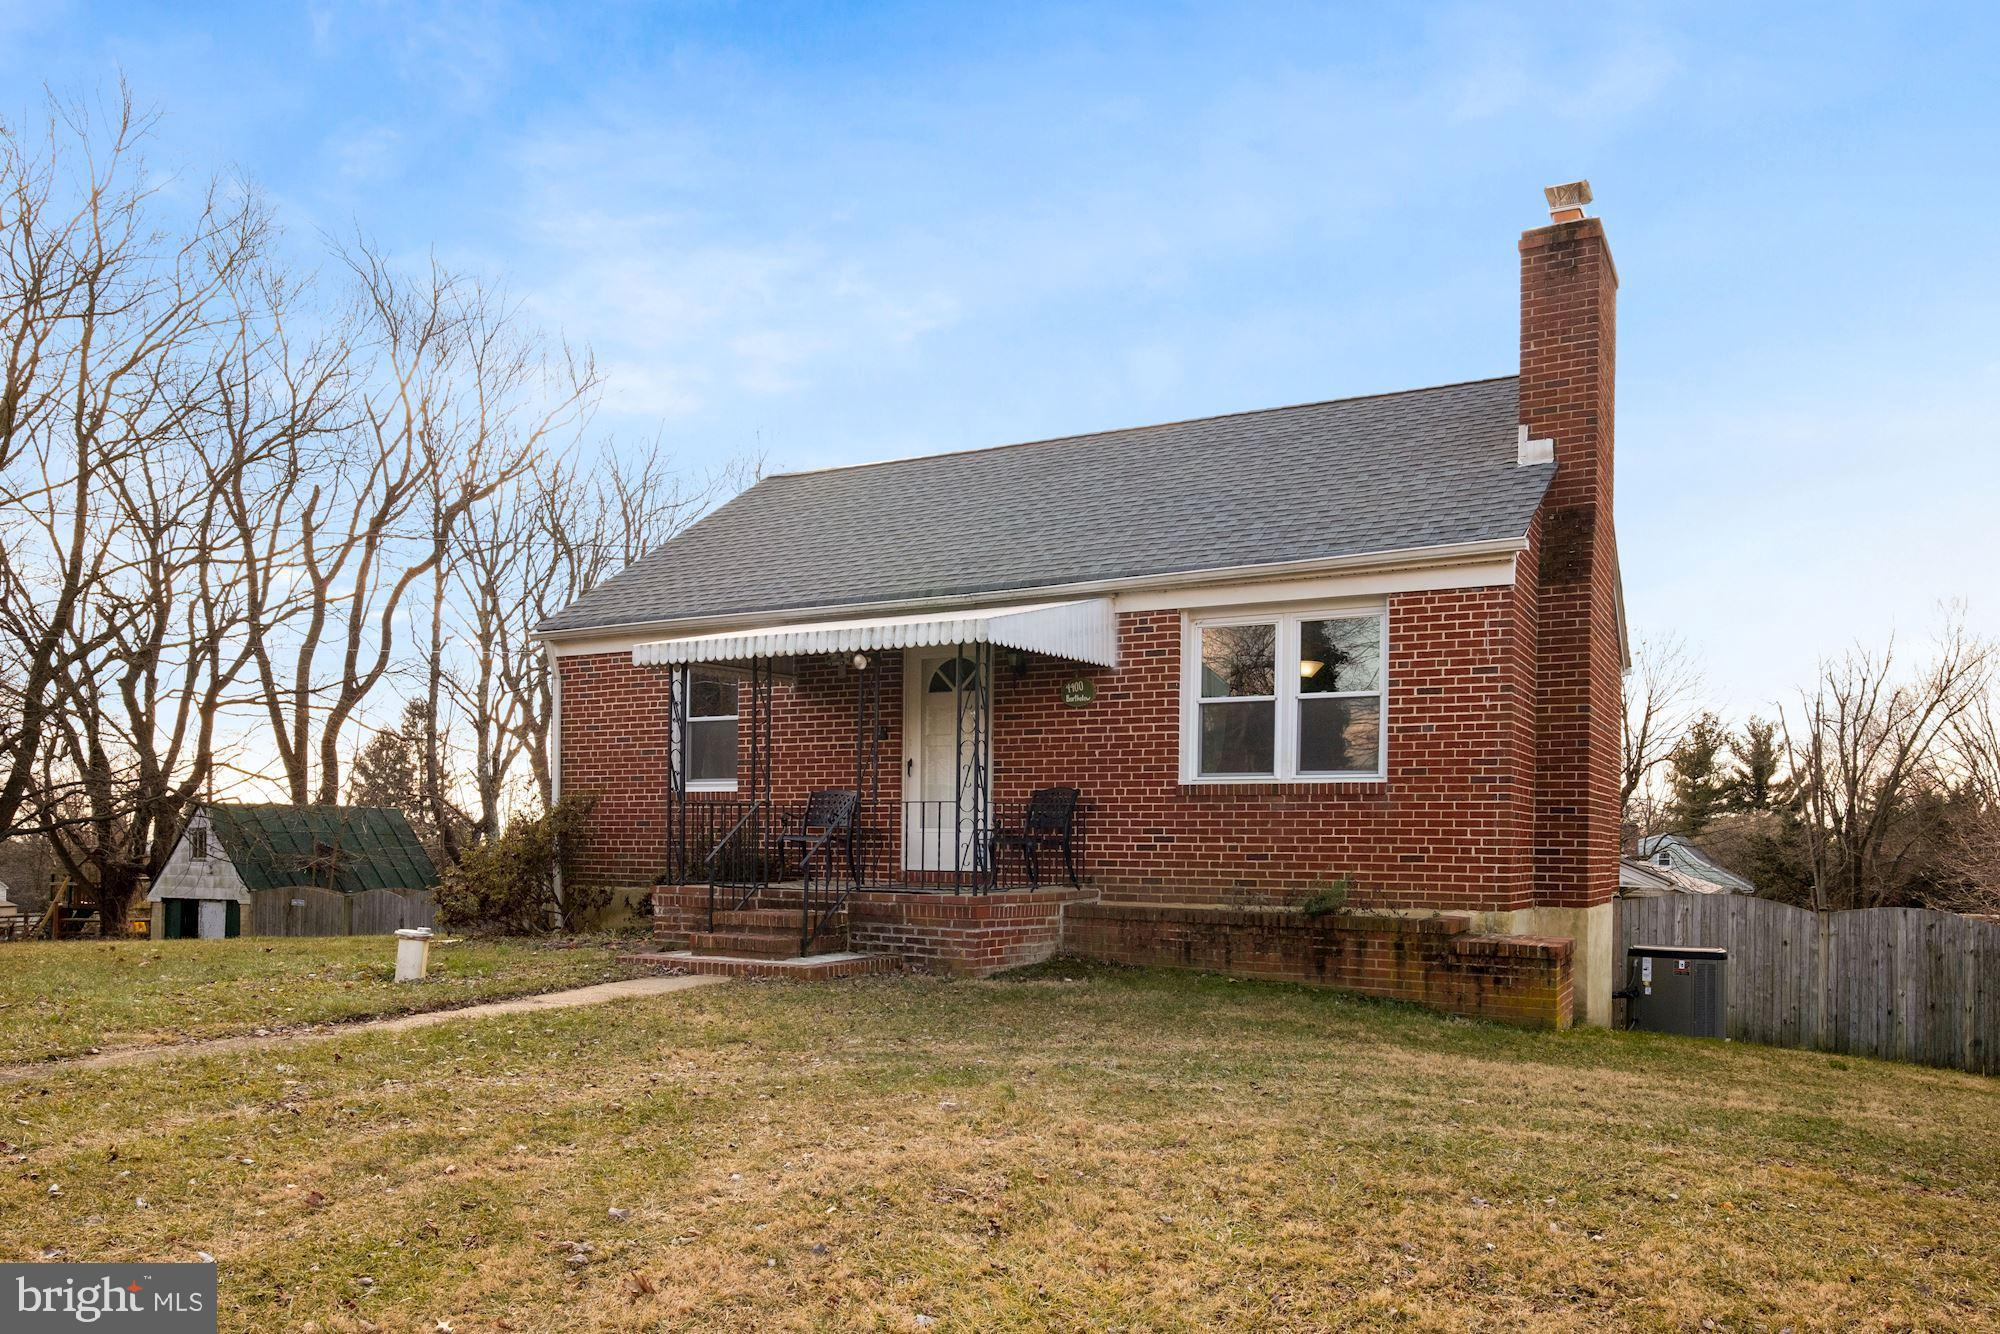 Welcome to this wonderful all brick home sitting on an acre of land with a bunch of recent, valuable